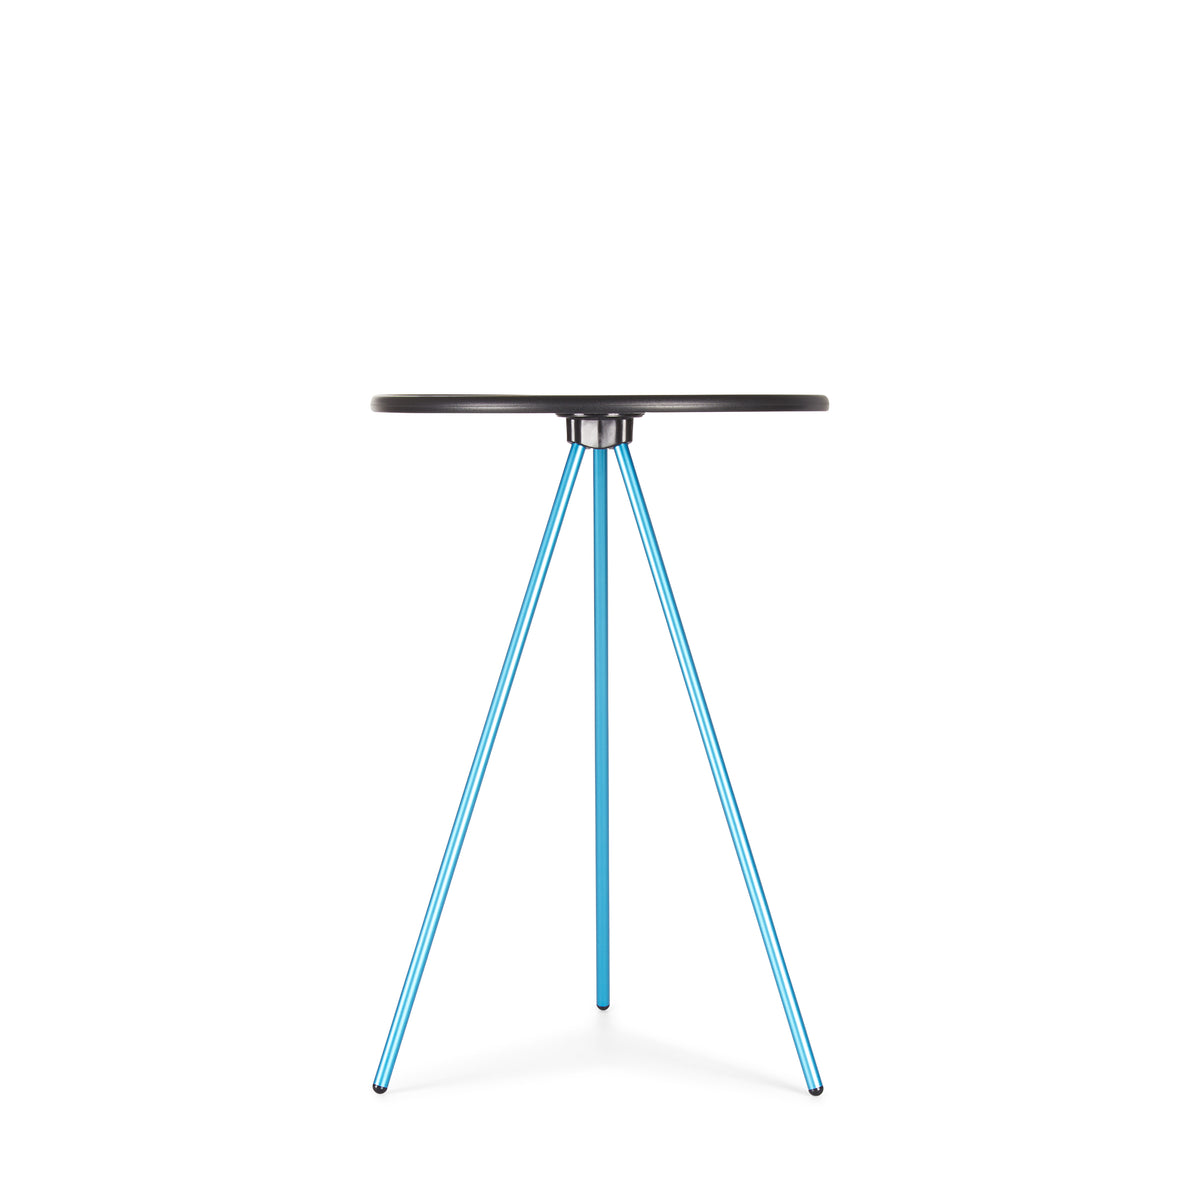 always within reach Side Table S